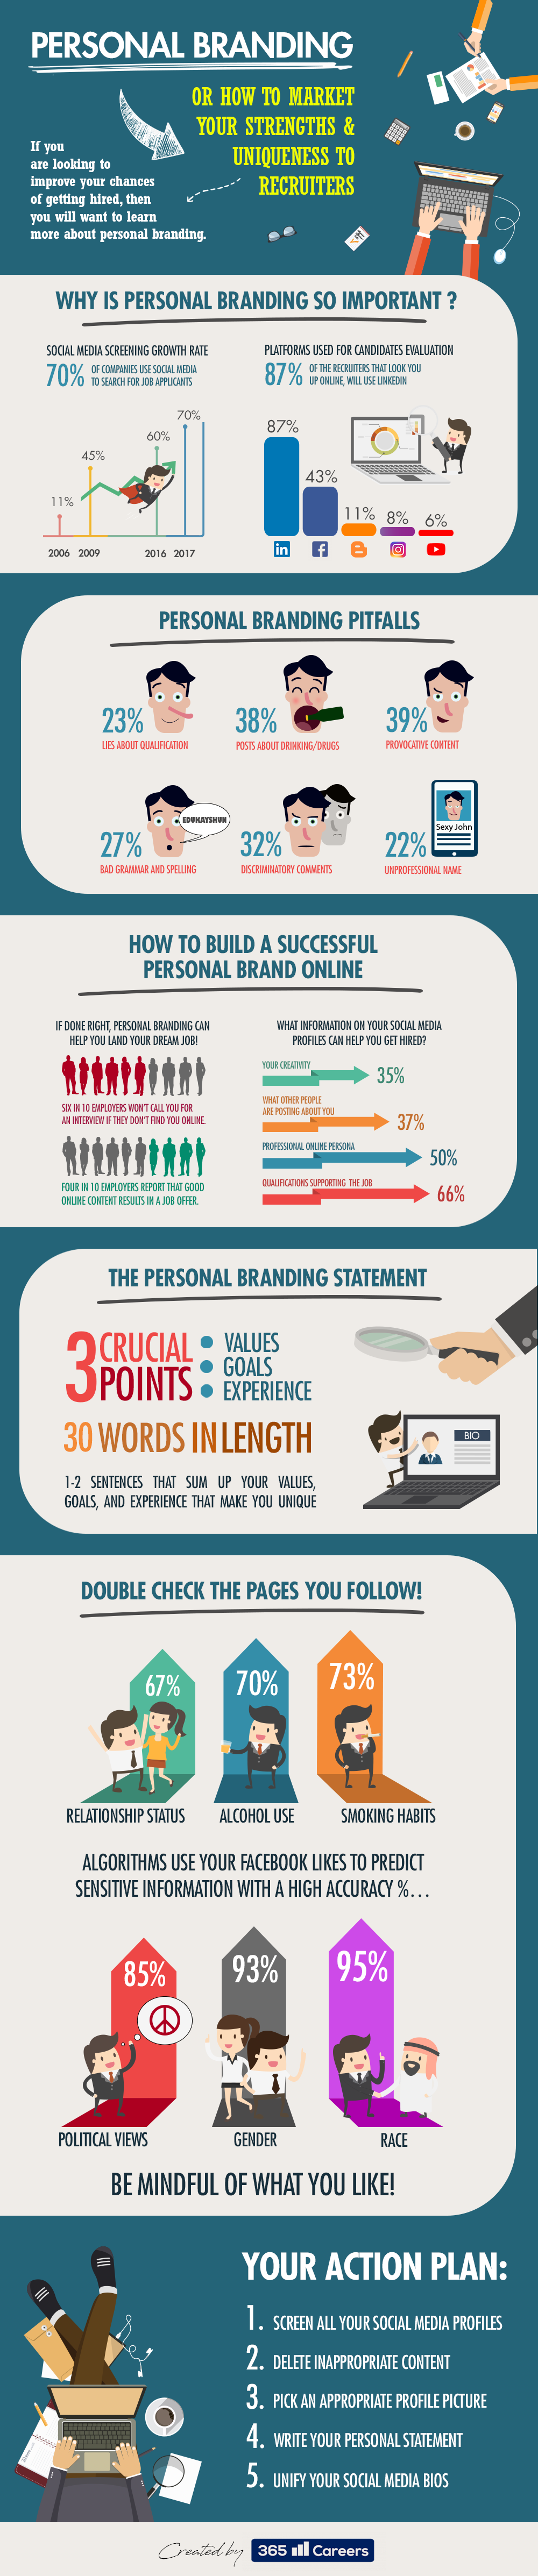 What is personal branding or how to market yourself to recruiters